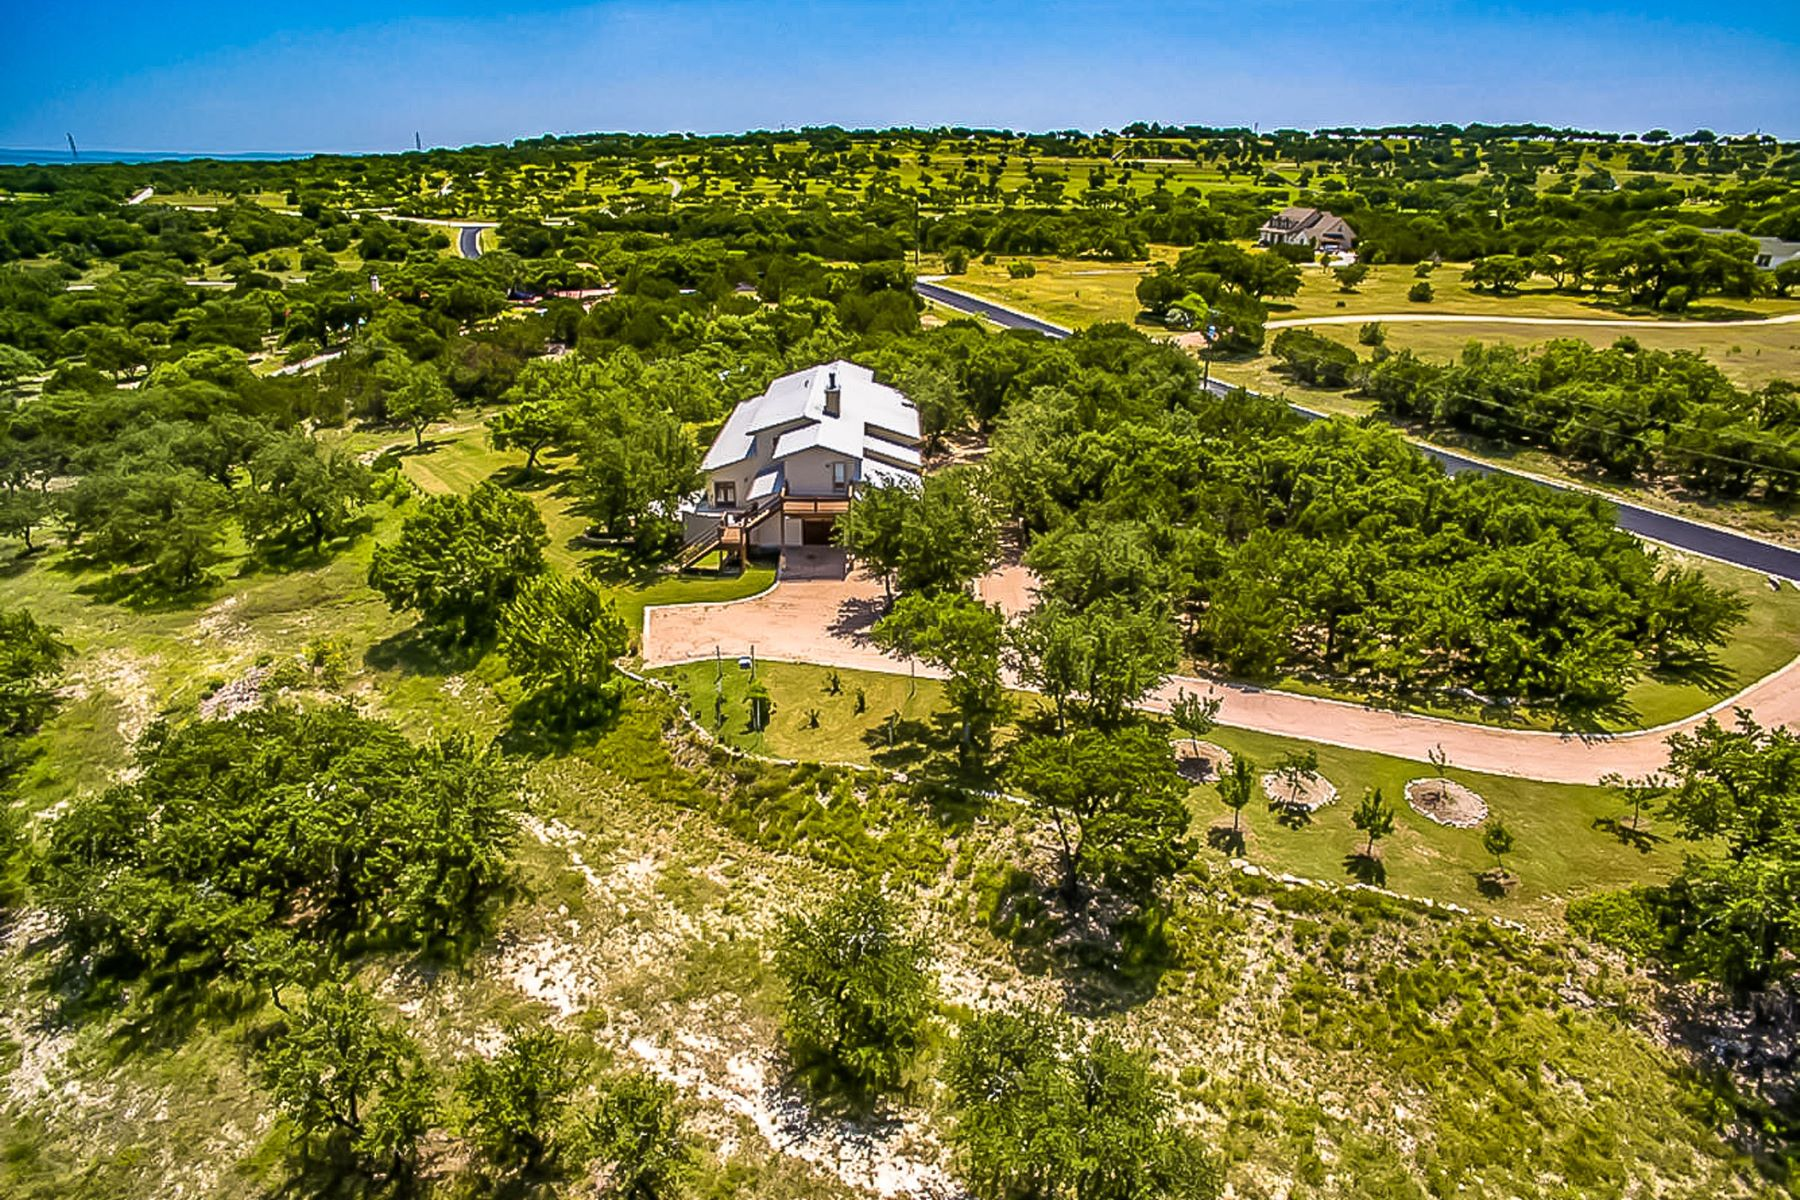 Ferme / Ranch / Plantation pour l Vente à Panoramic Views of the Hill Country 140 Granite Ridge Dr Spicewood, Texas, 78669 États-Unis